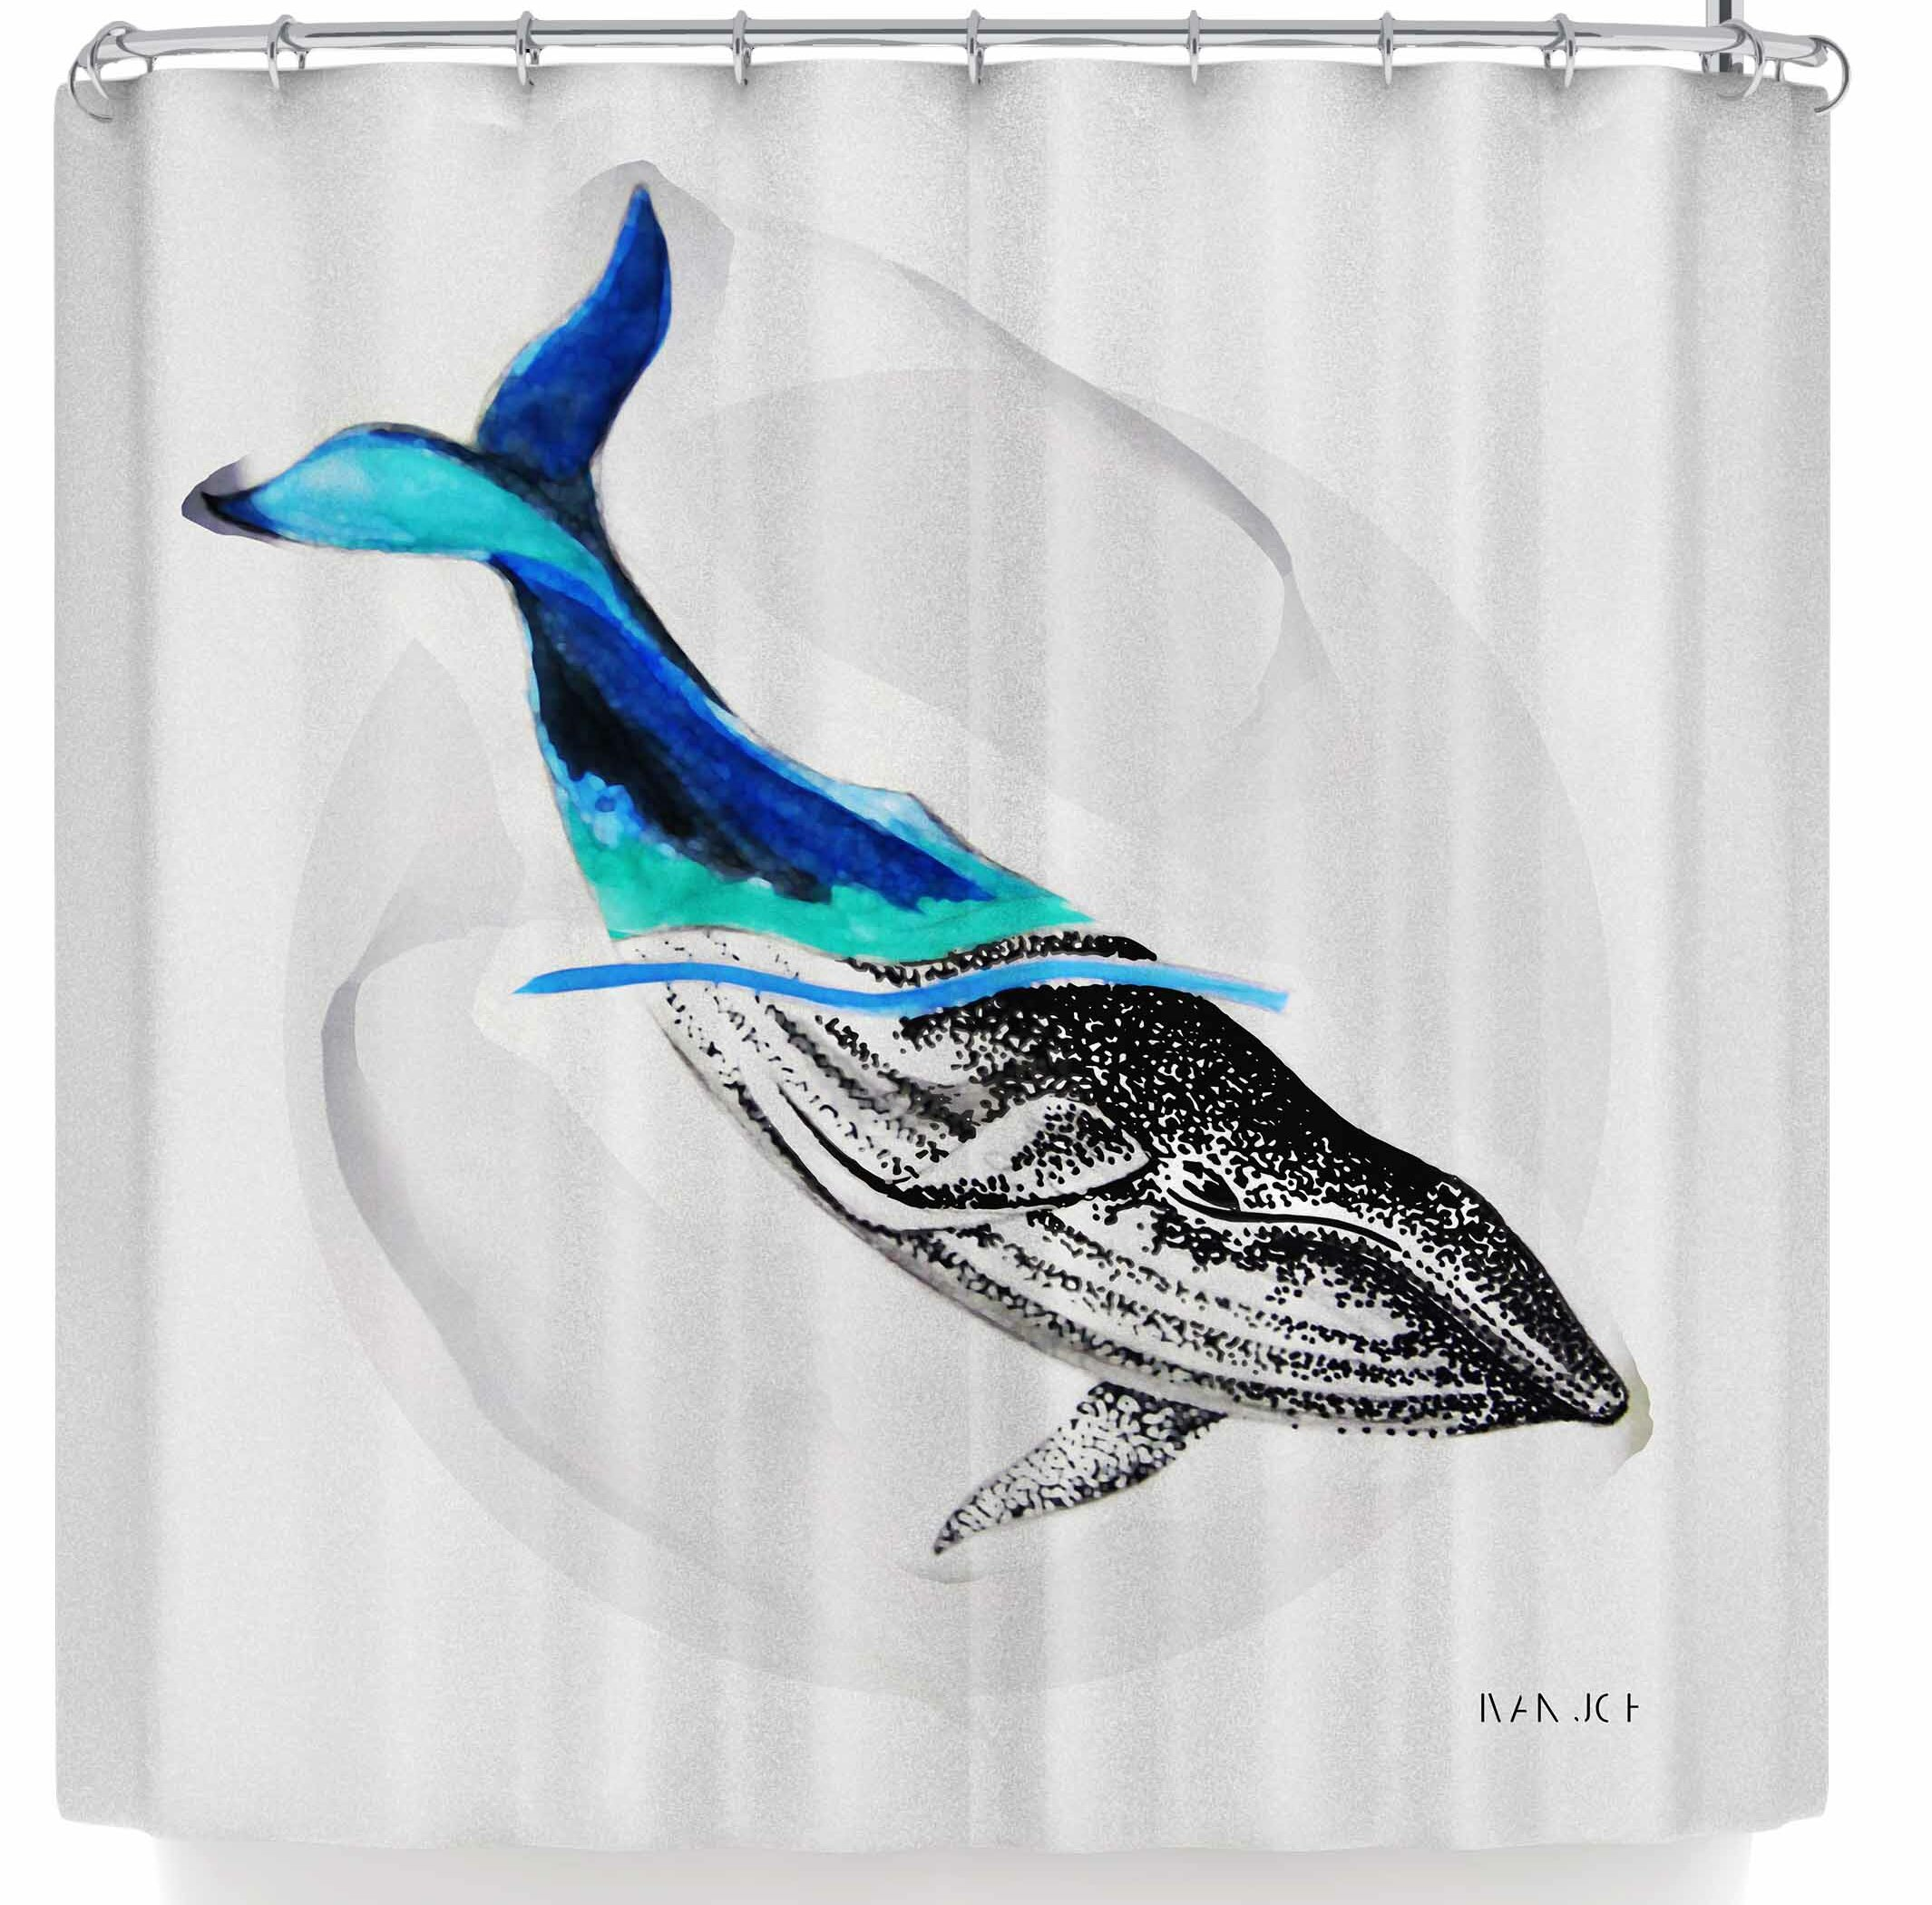 East Urban Home Ivan Joh Whale Shower Curtain